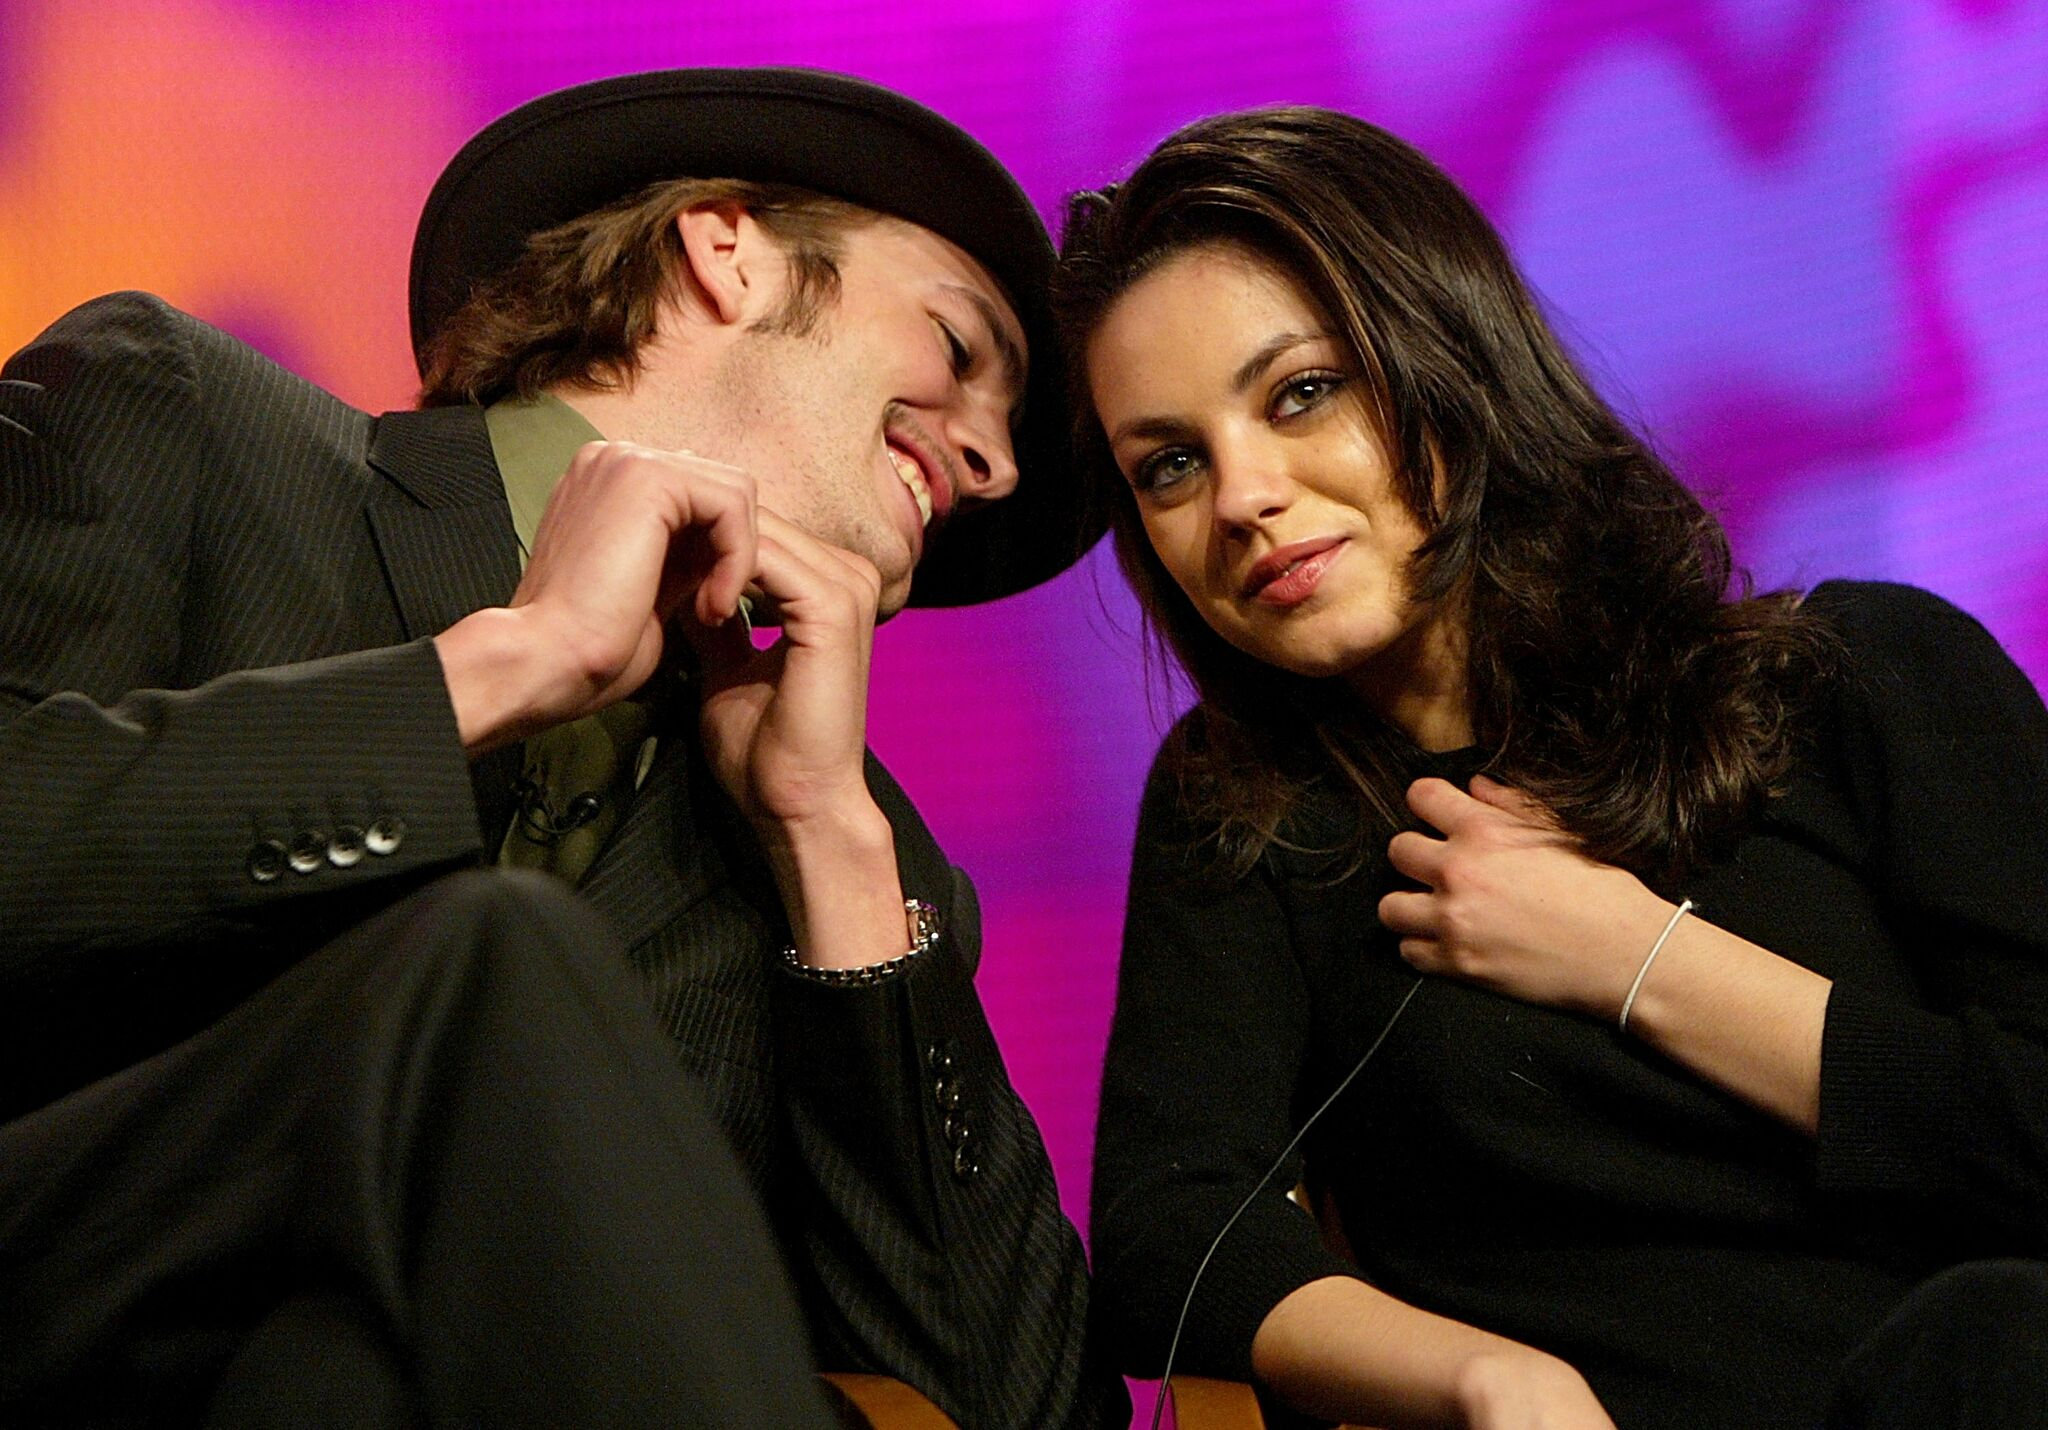 Ashton Kutcher (L) and Actress Mila Kunis during the FOX Television Critics Association Press Tour  | Getty Images